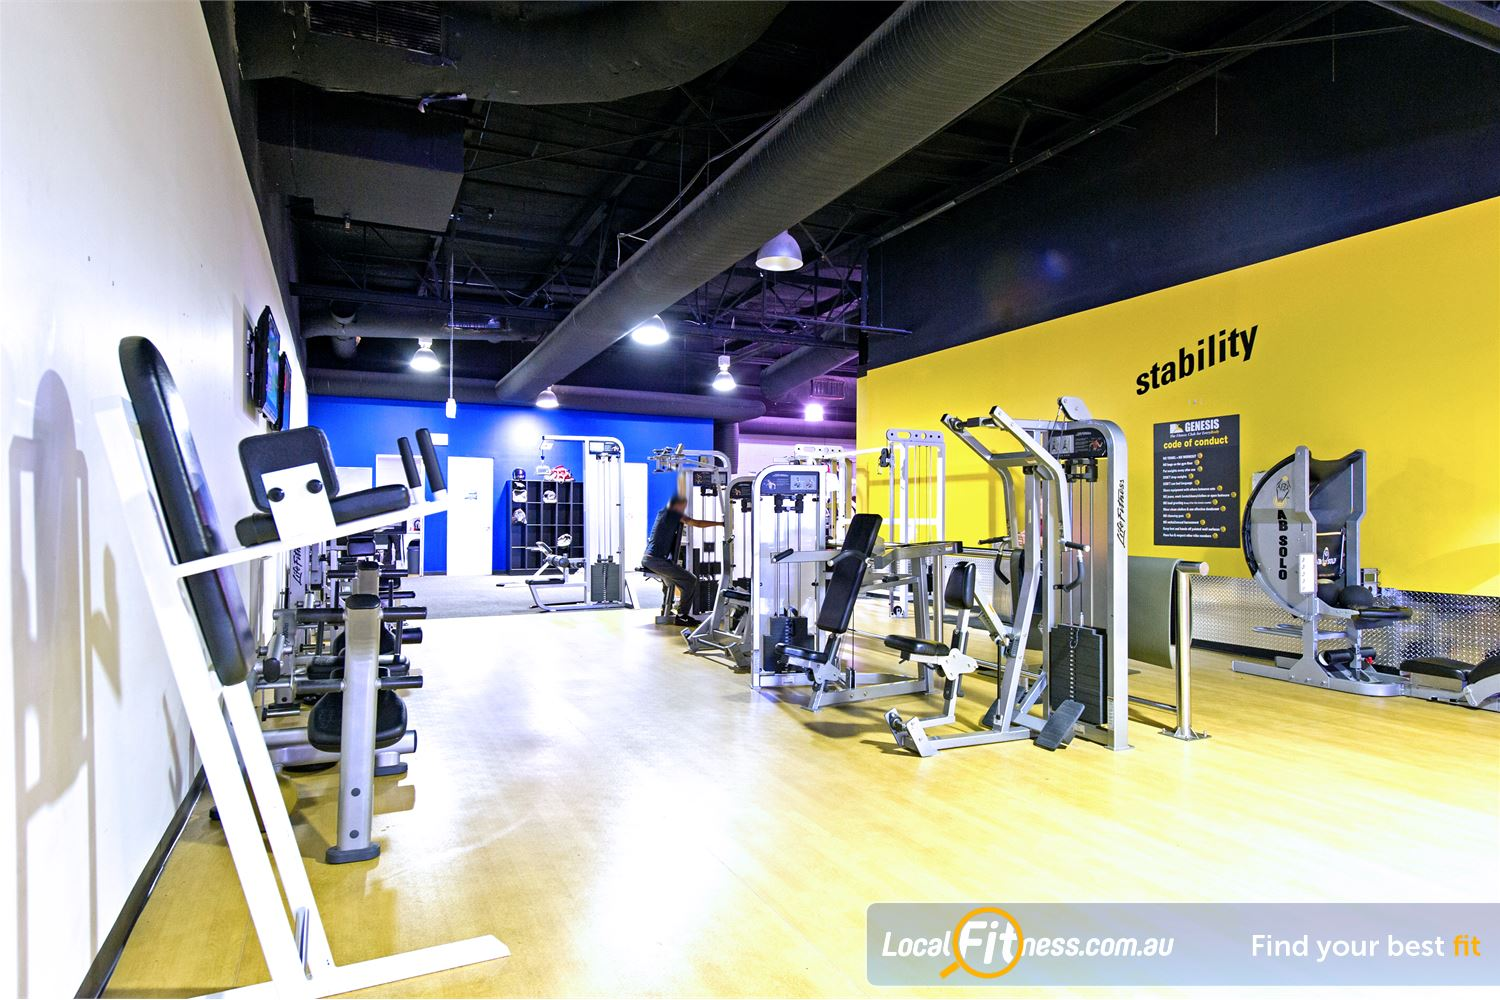 Vibe Health Clubs Near Marayong Vibe Blacktown gym provides a fully equipped facility.